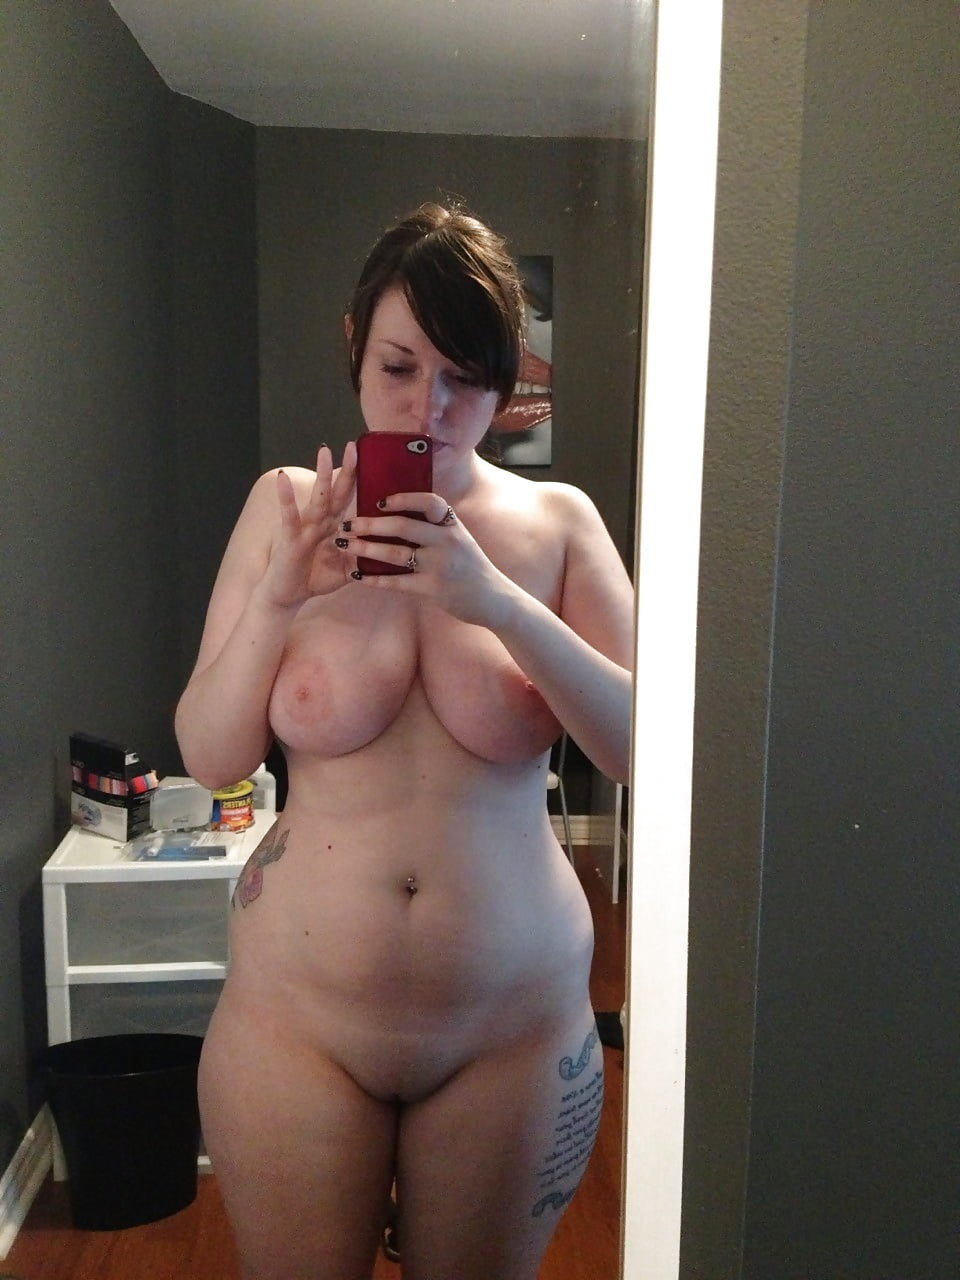 chubby-girls-naked-on-kik-basketballvplayers-caught-nude